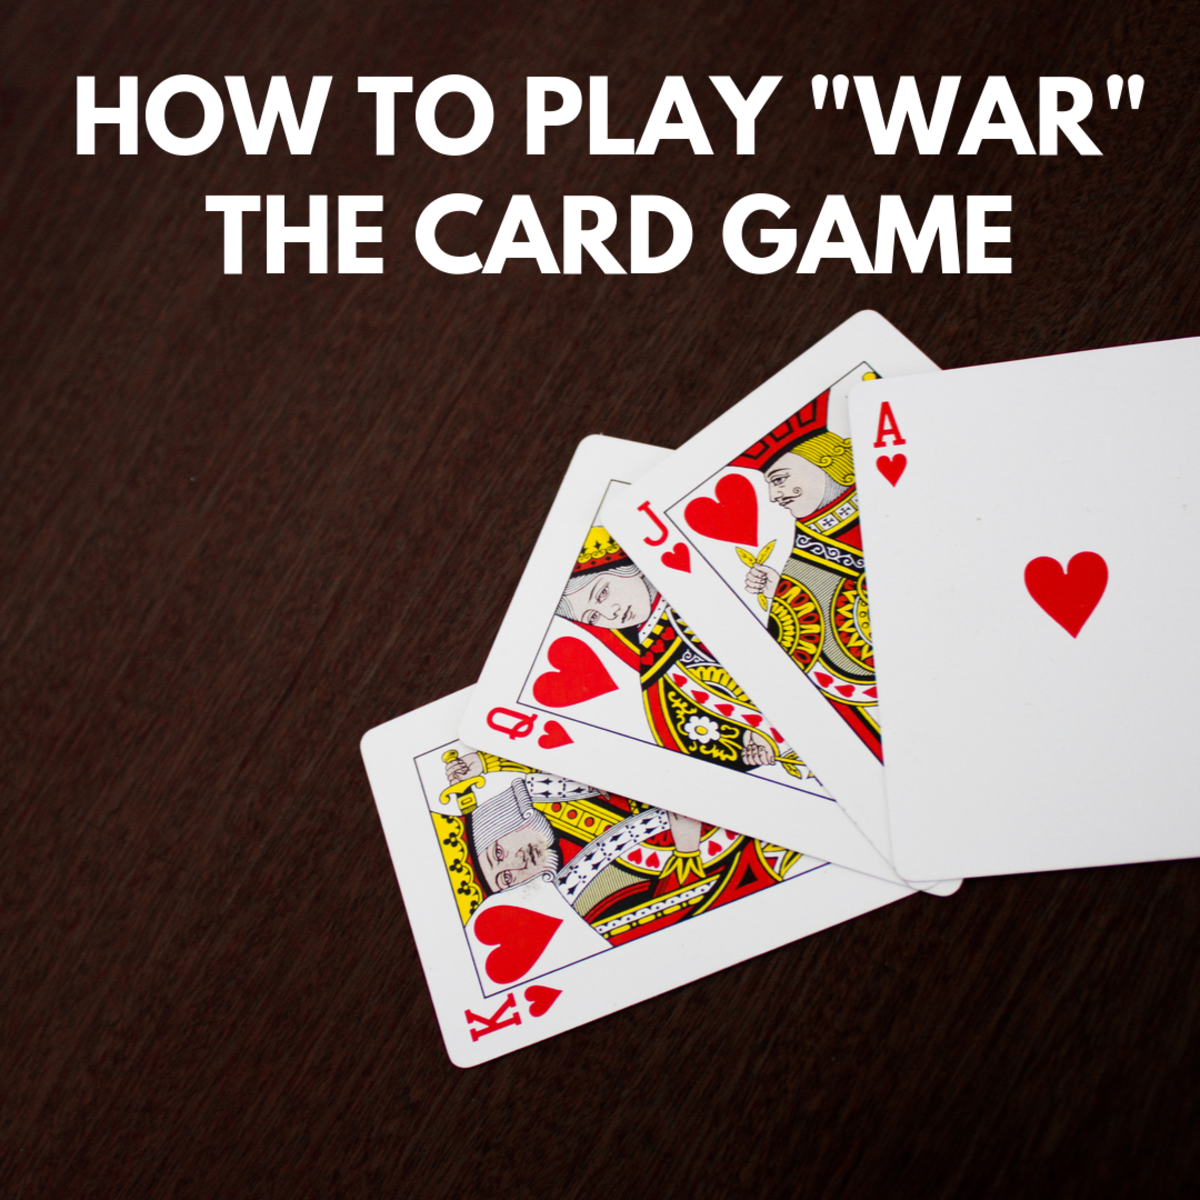 How to Play the War Card Game